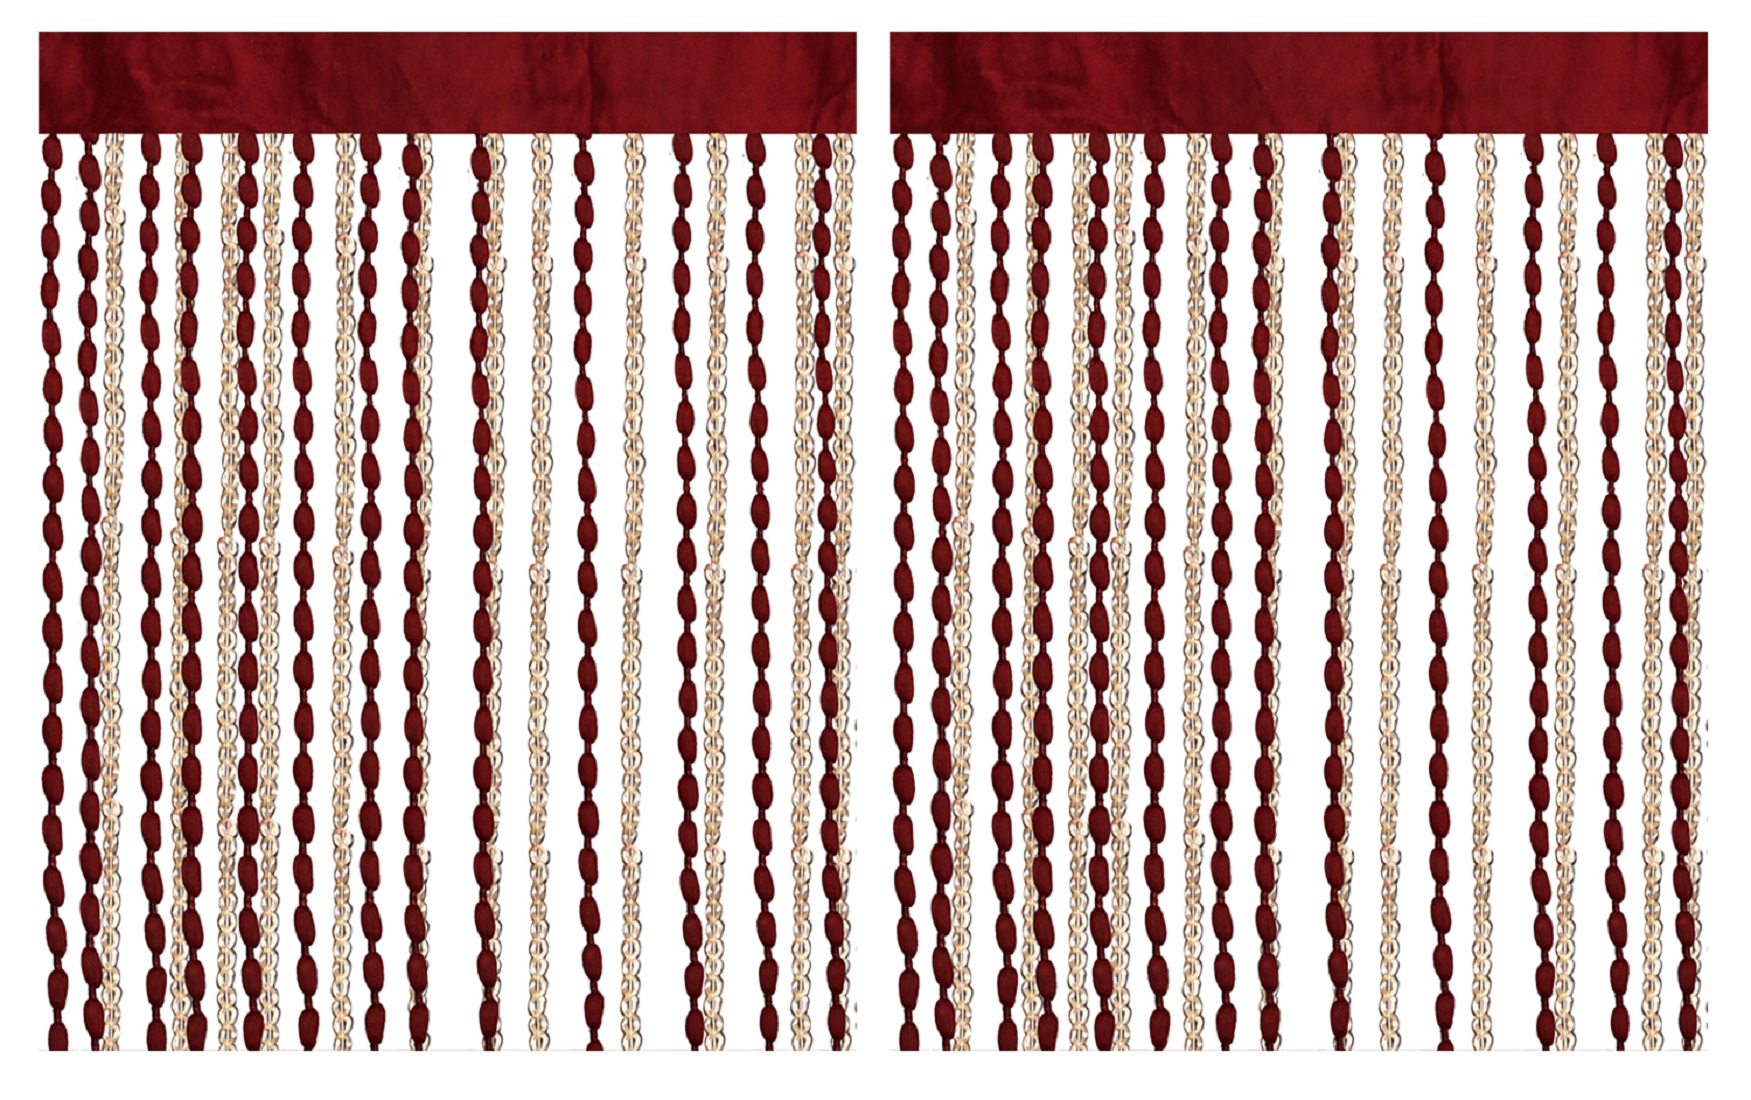 Kuber Industries Polyester 2 Pieces Decorative String Thread Room Door Curtain 7 Feet (Multi) -CTKTC13028